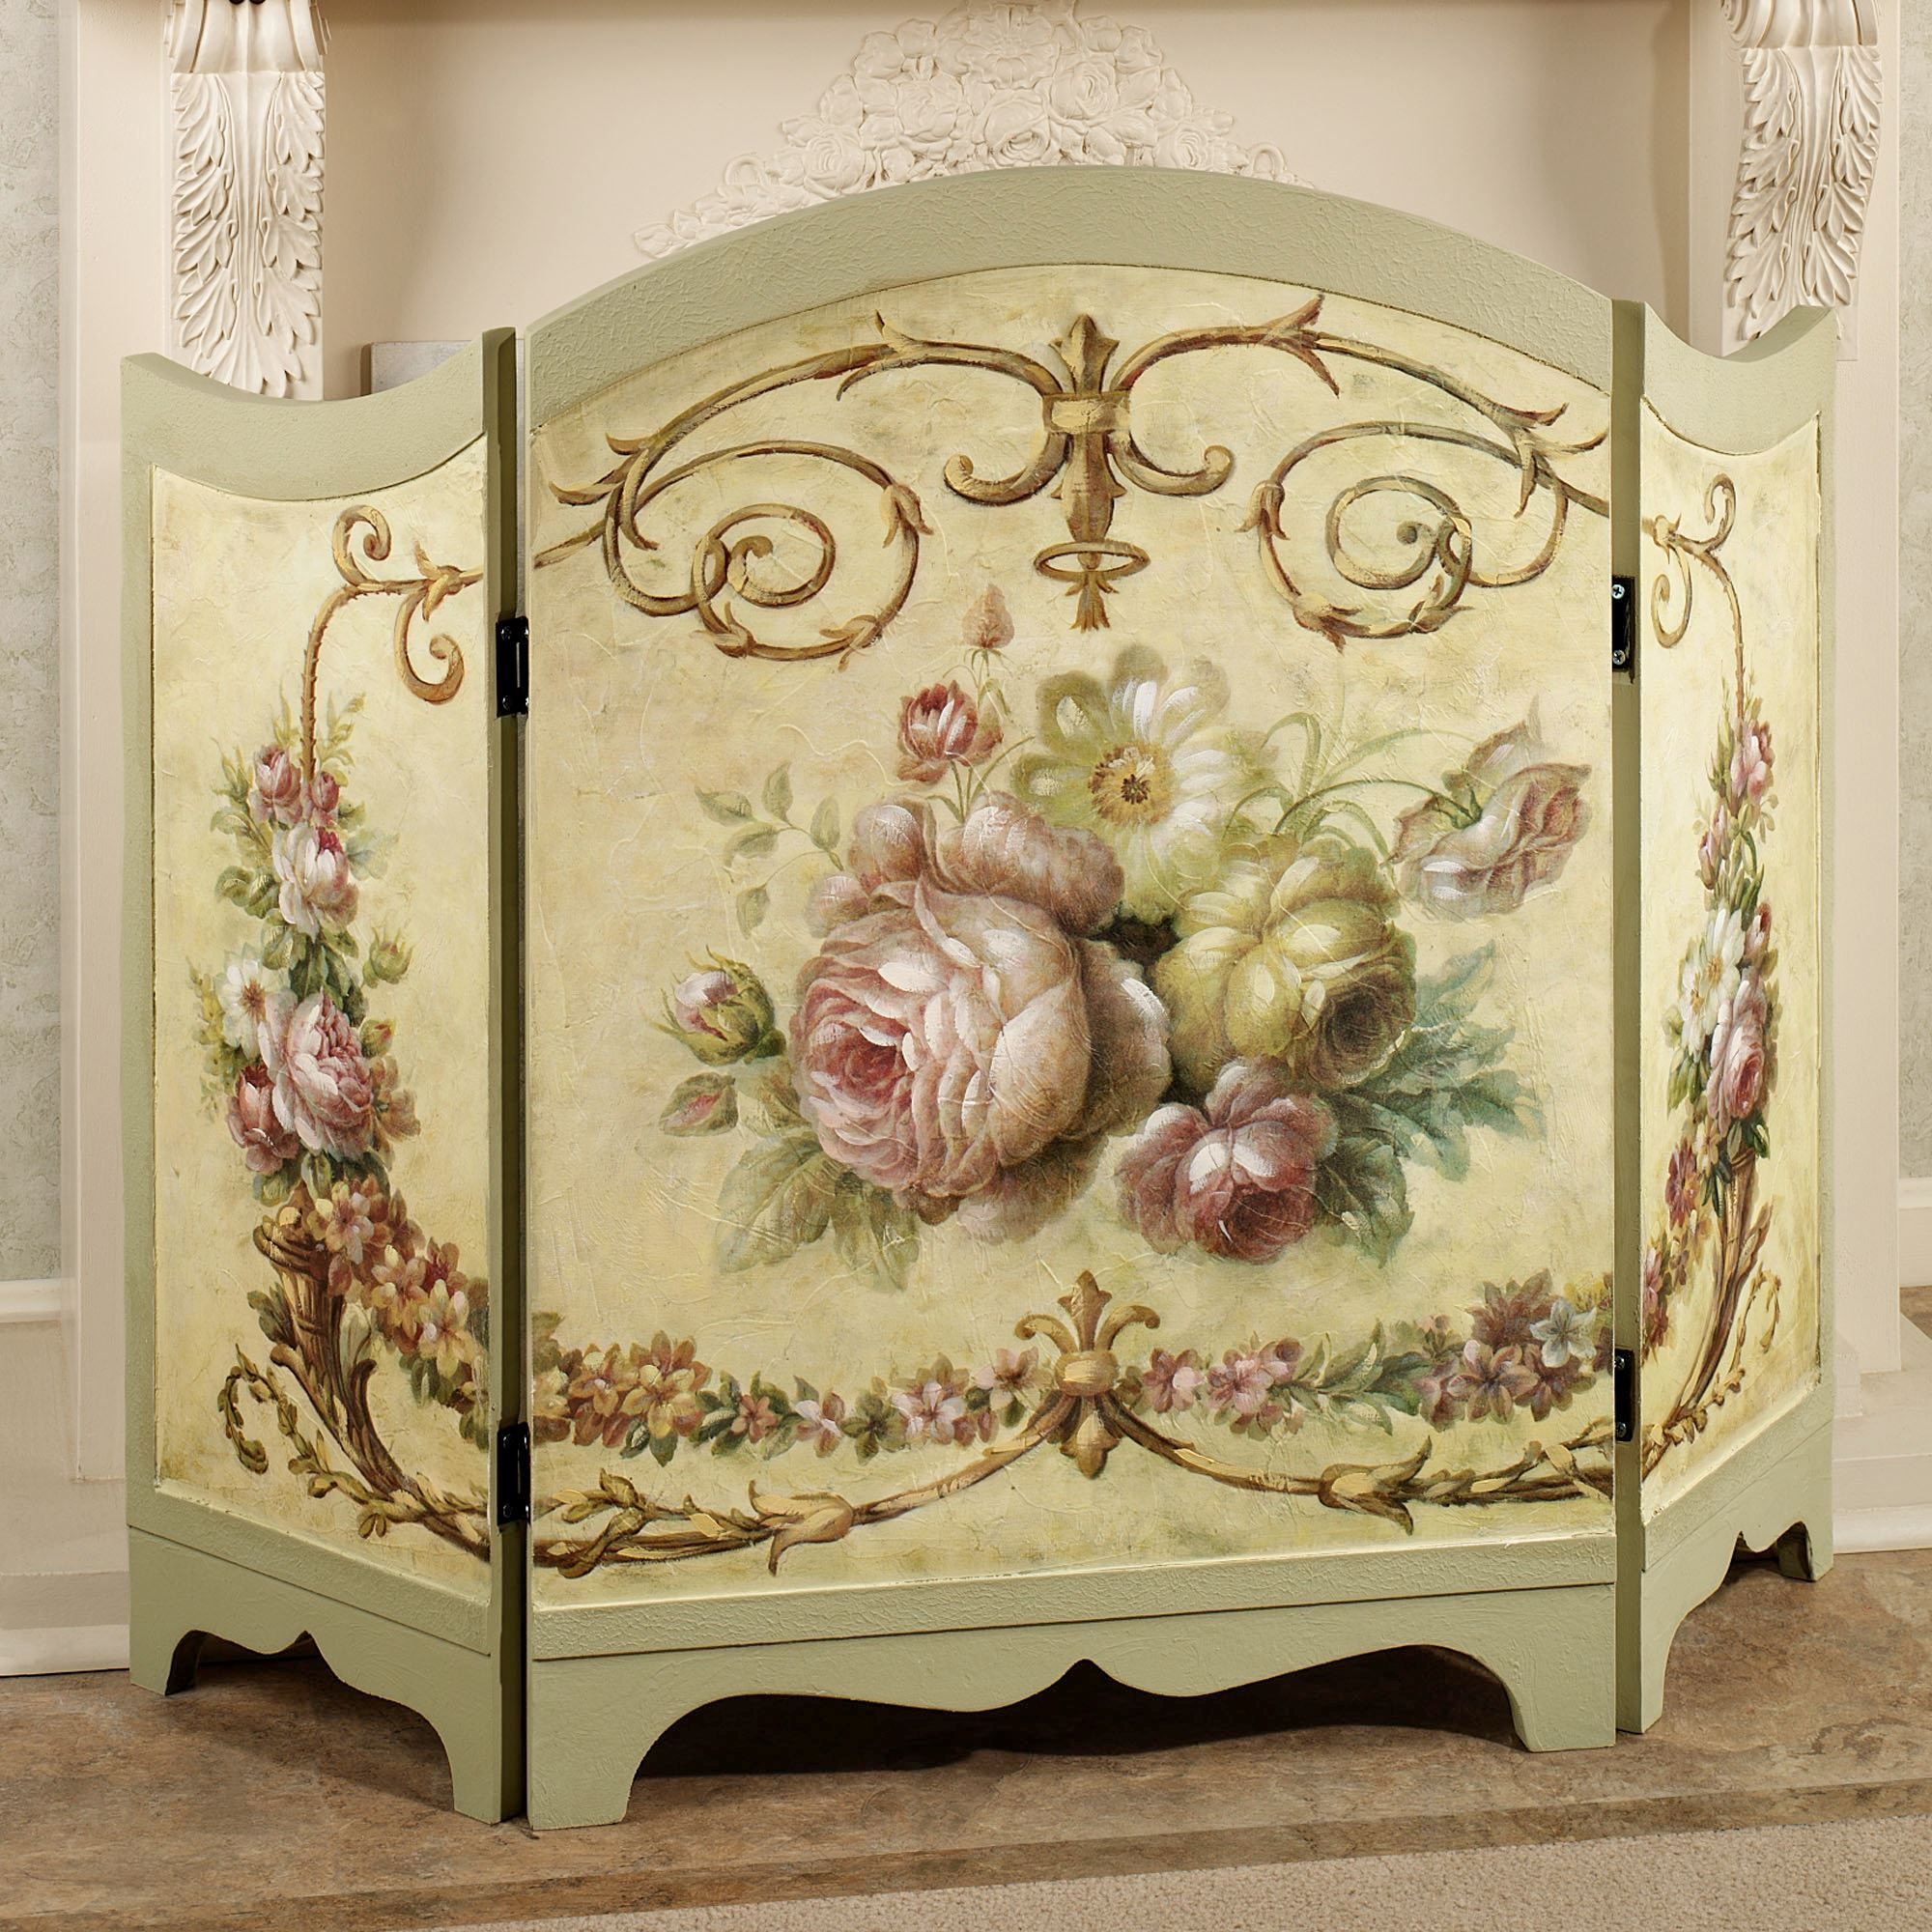 Victorian Rose Decorative Fireplace Screen